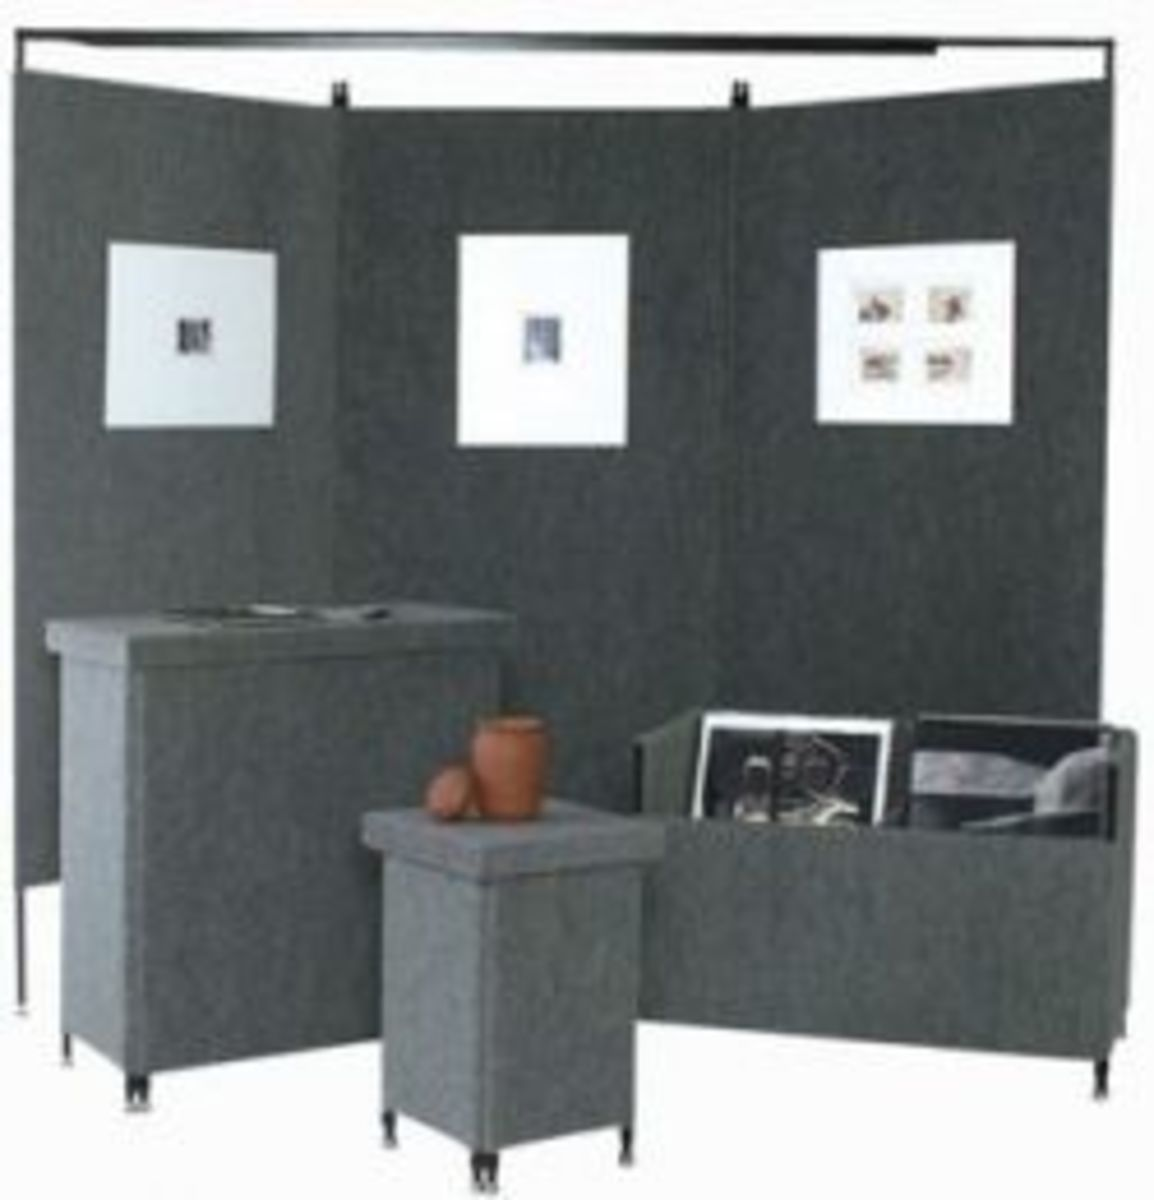 Portable Art Exhibition Stands : Artwork display panels hubpages